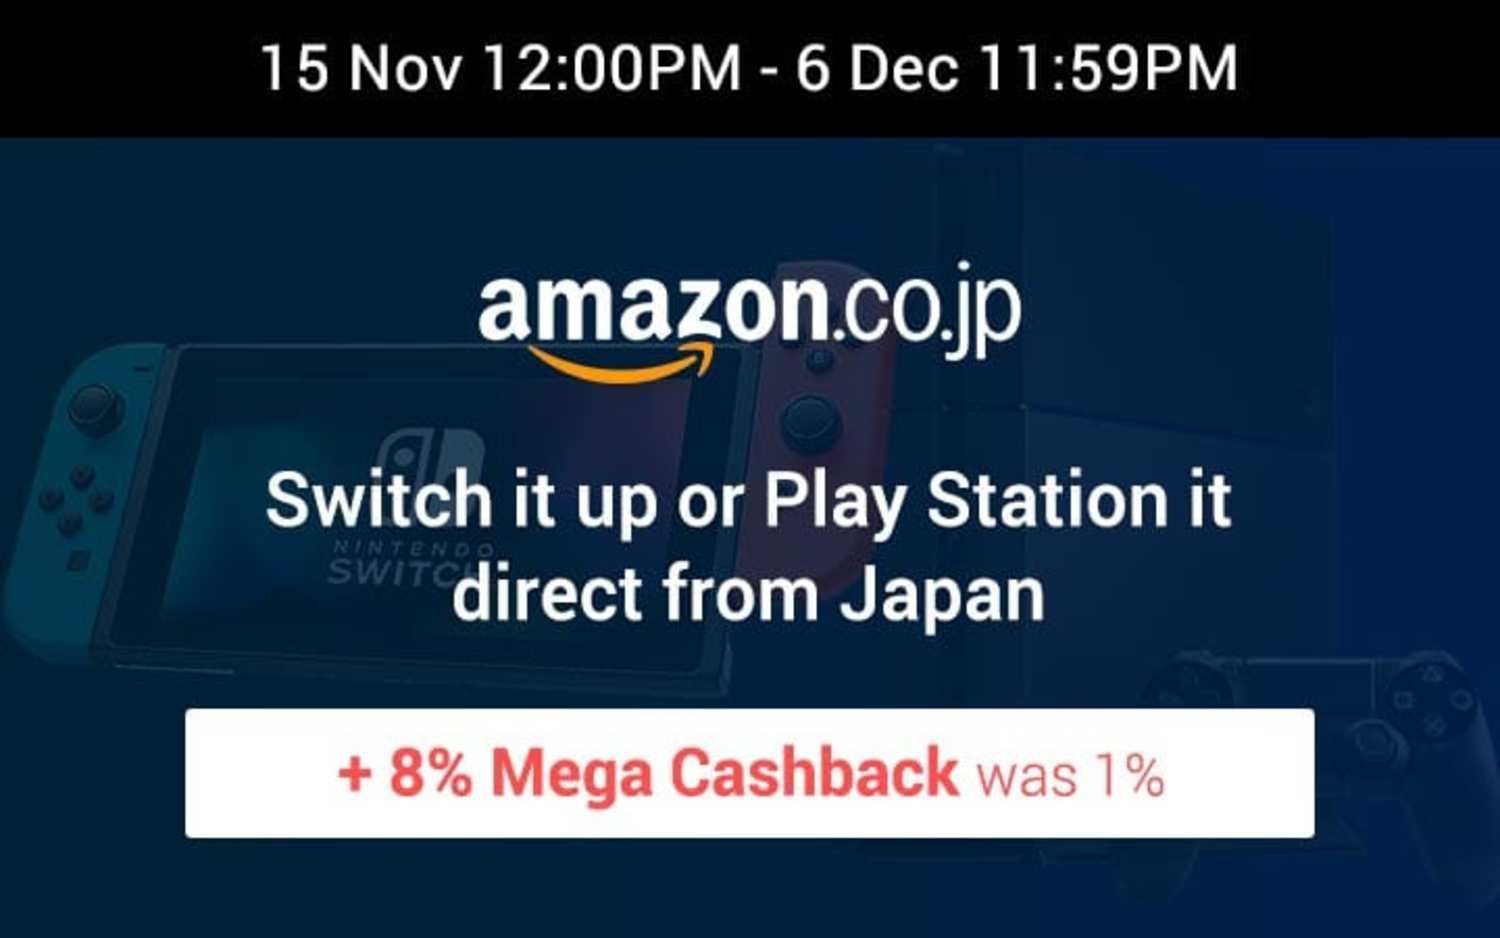 Amazon Japan: Switch it up or Play Station it direct from Japan + 8% Mega Cashback (was 1%)